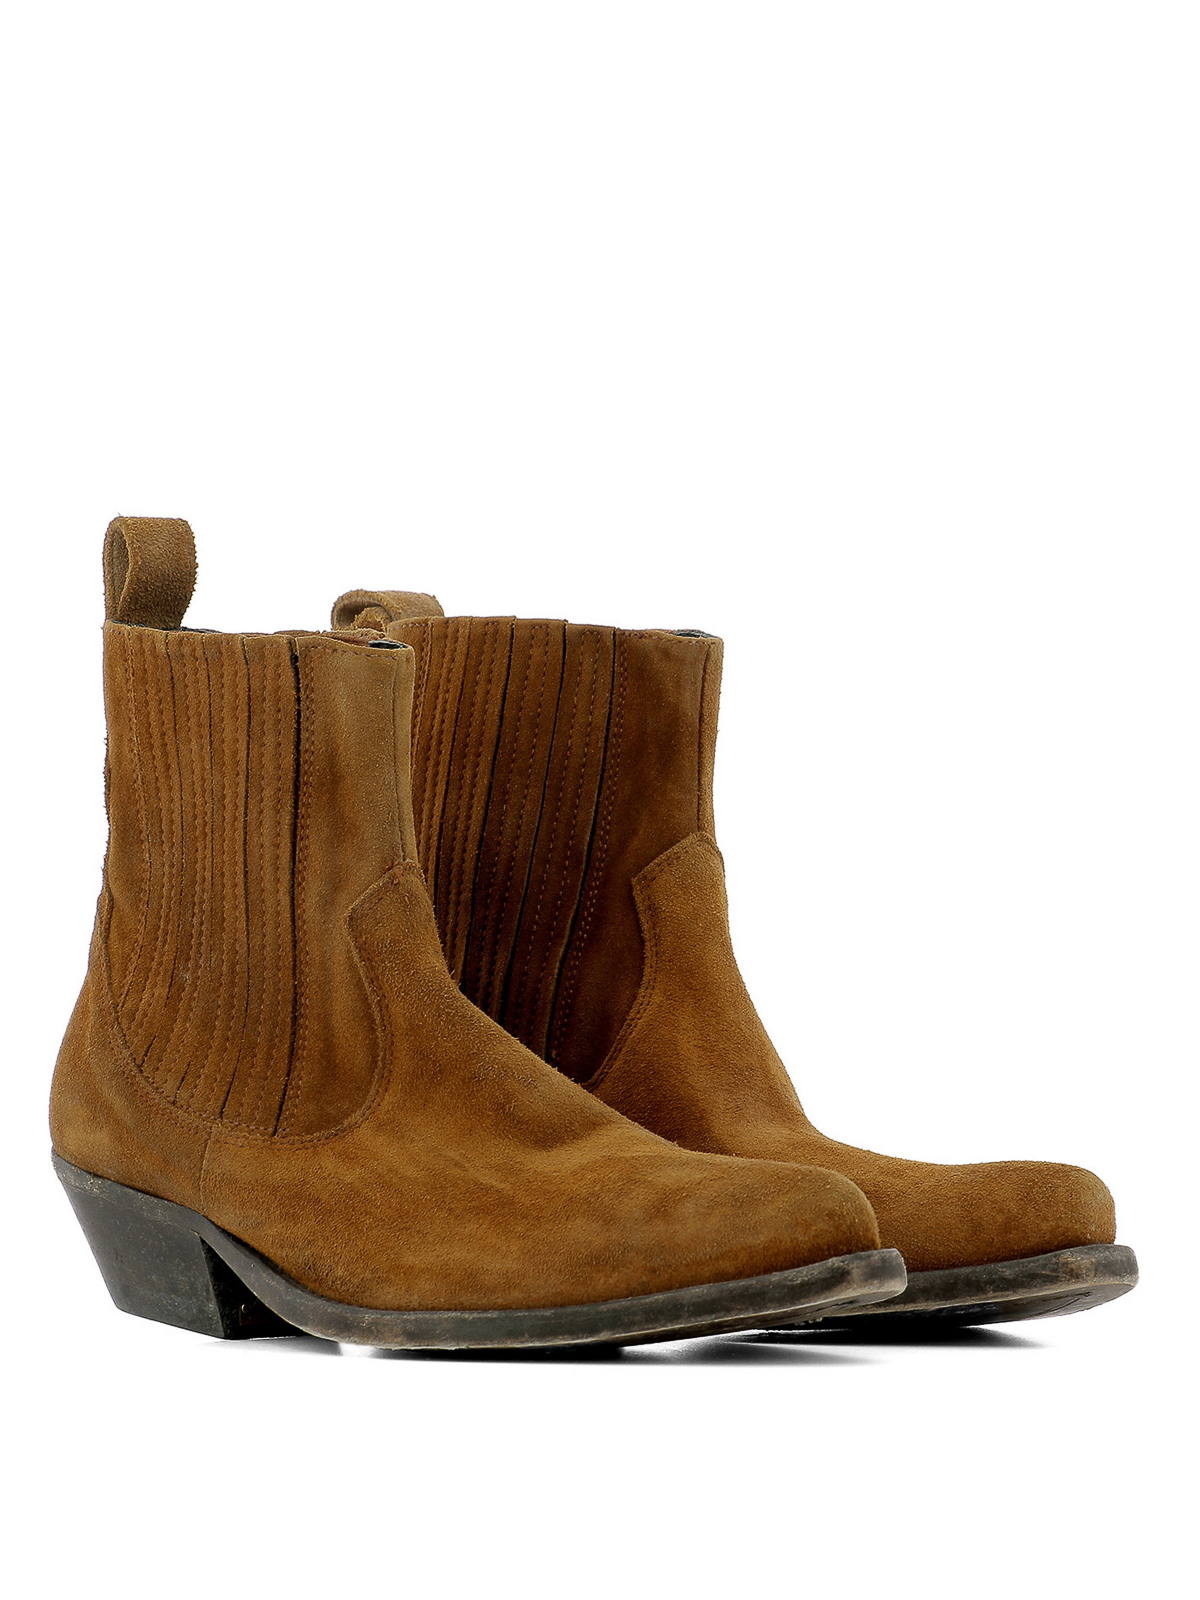 9a13976b2304b Golden goose ankle boots online crosby suede western ankle boots jpg  1200x1600 Golden goose mary crosby